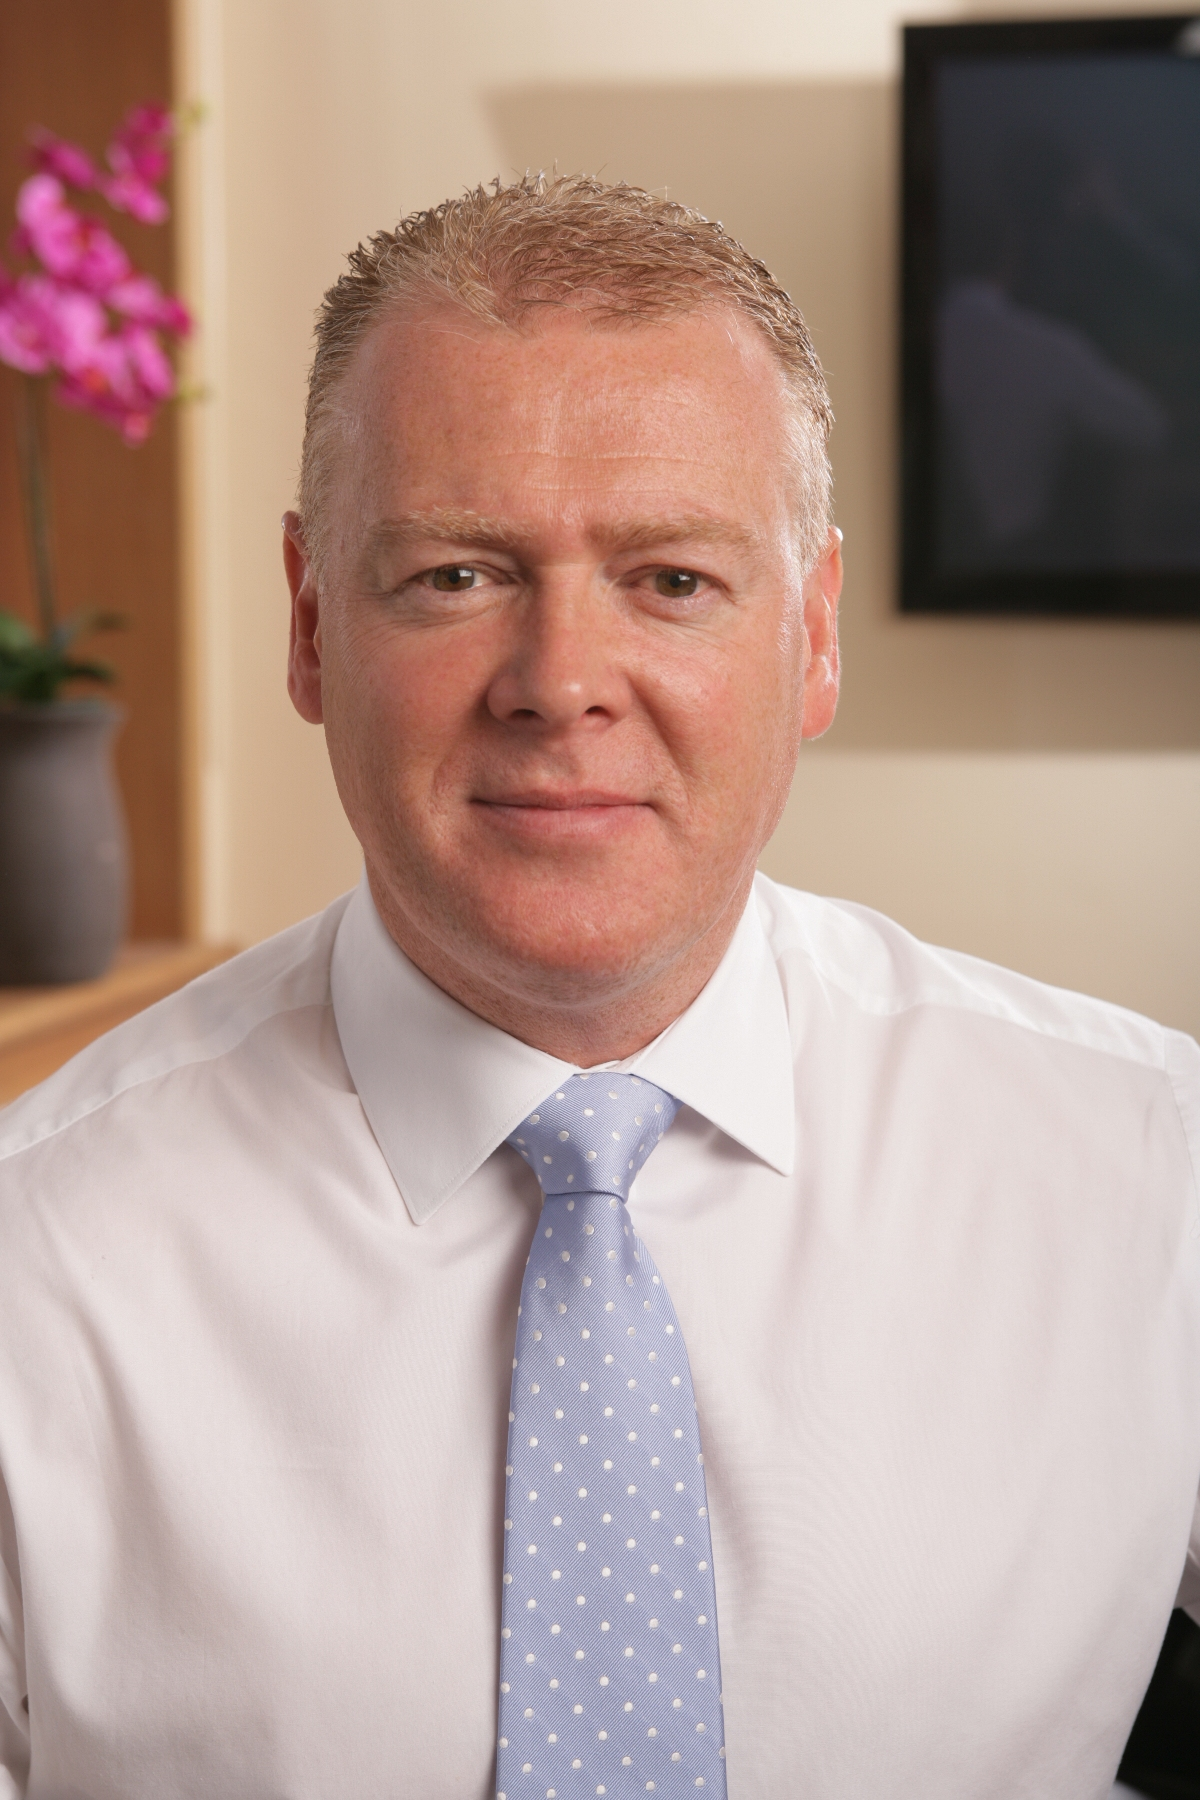 James Donaldson & Sons group MD to step down next year